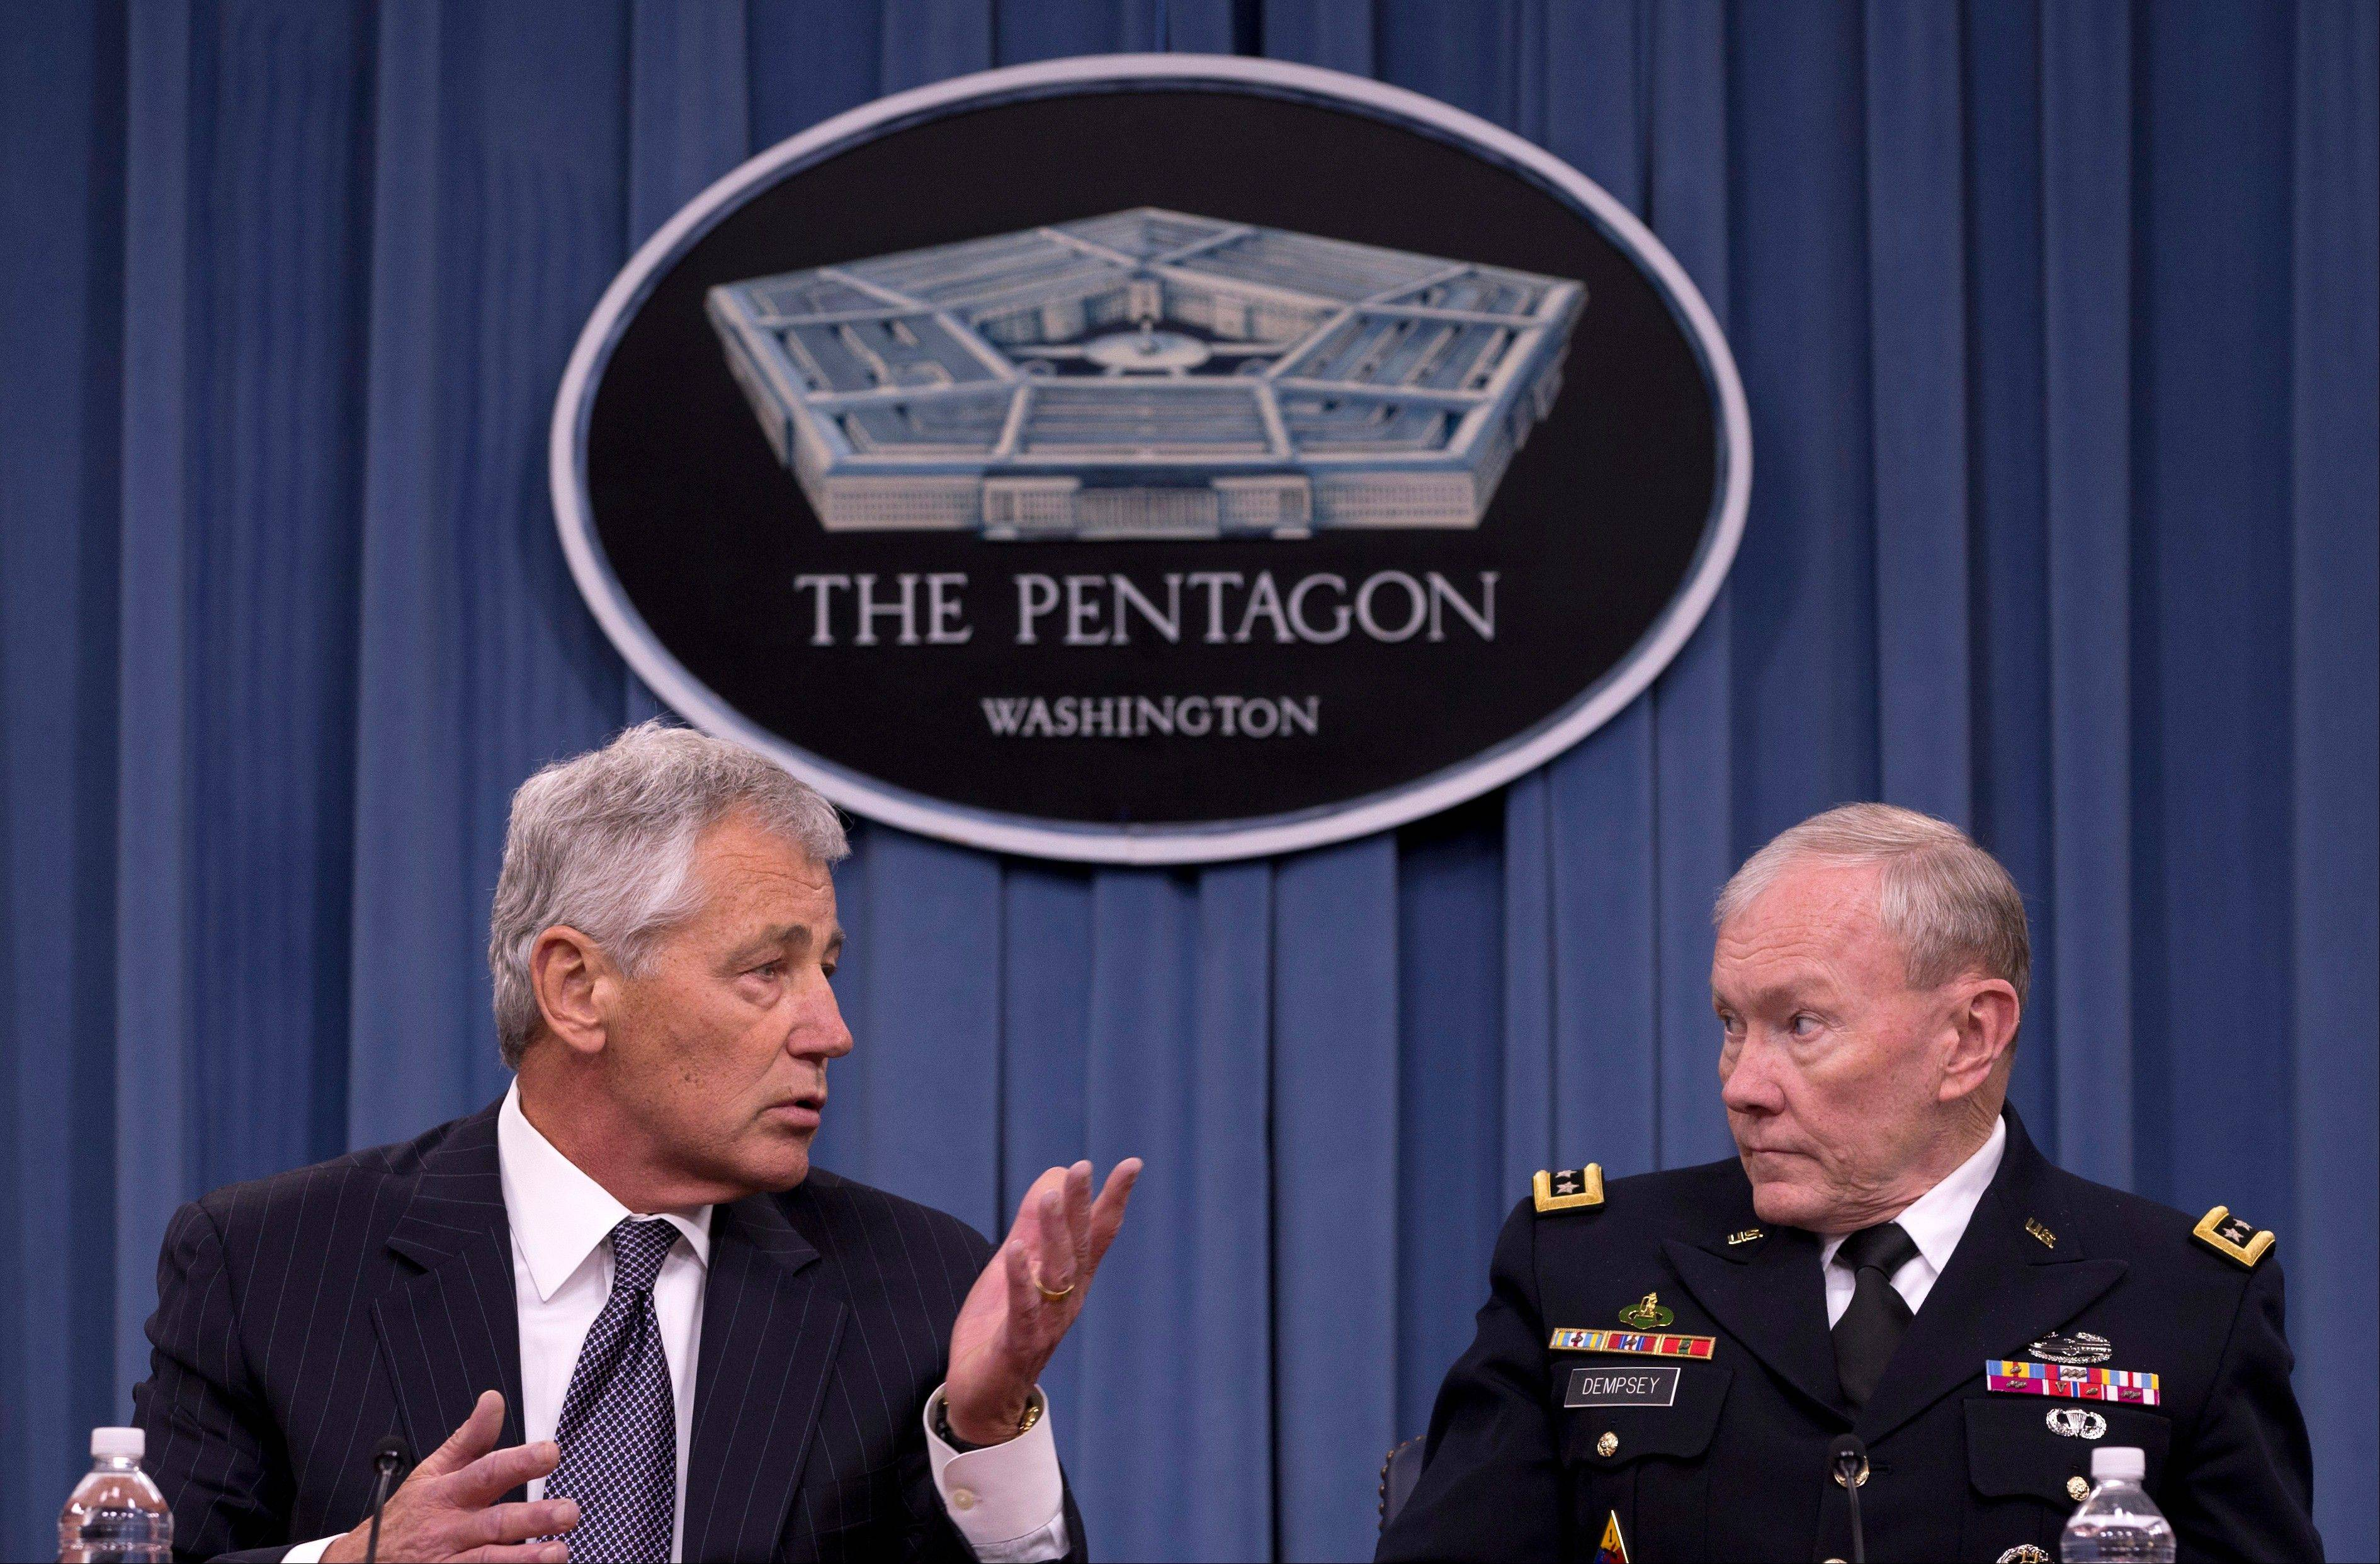 Defense Secretary Chuck Hagel, left, accompanied by Joint Chiefs Chairman Gen. Martin Dempsey, gestures Friday as he speaks during a news conference at the Pentagon.